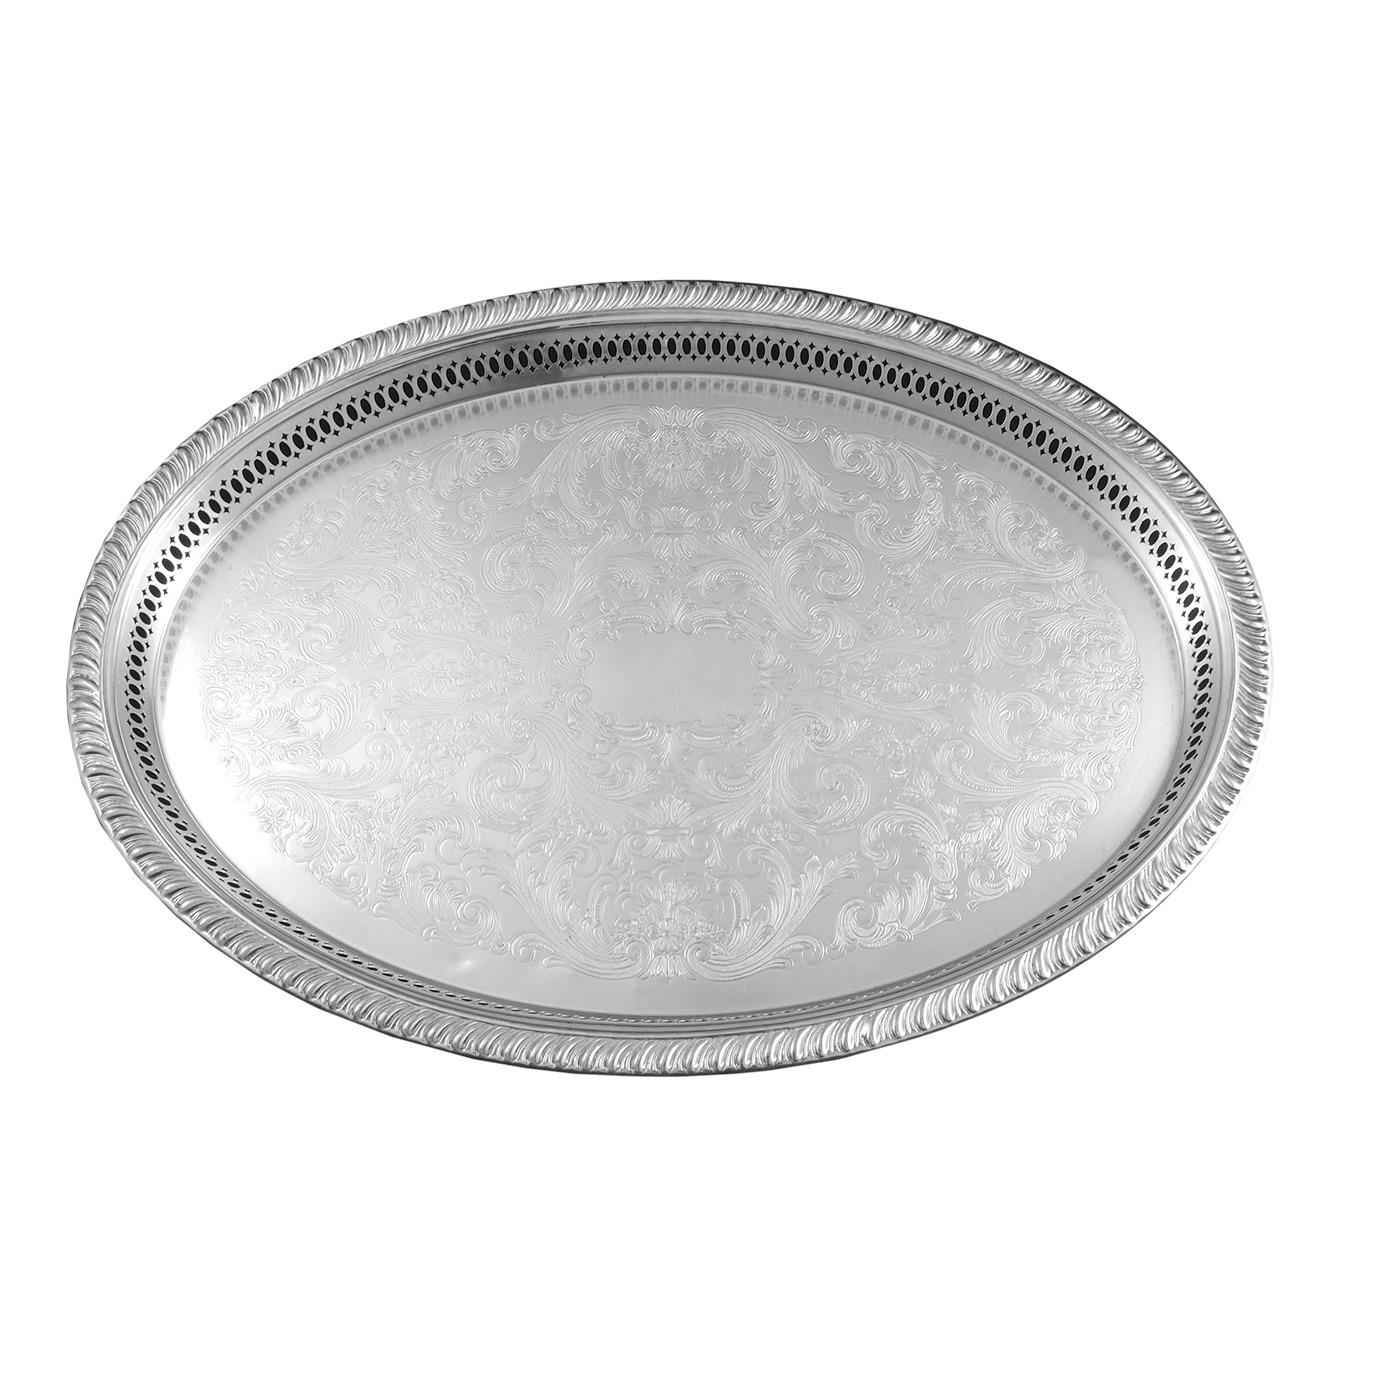 Silver Gallery Oval Tray